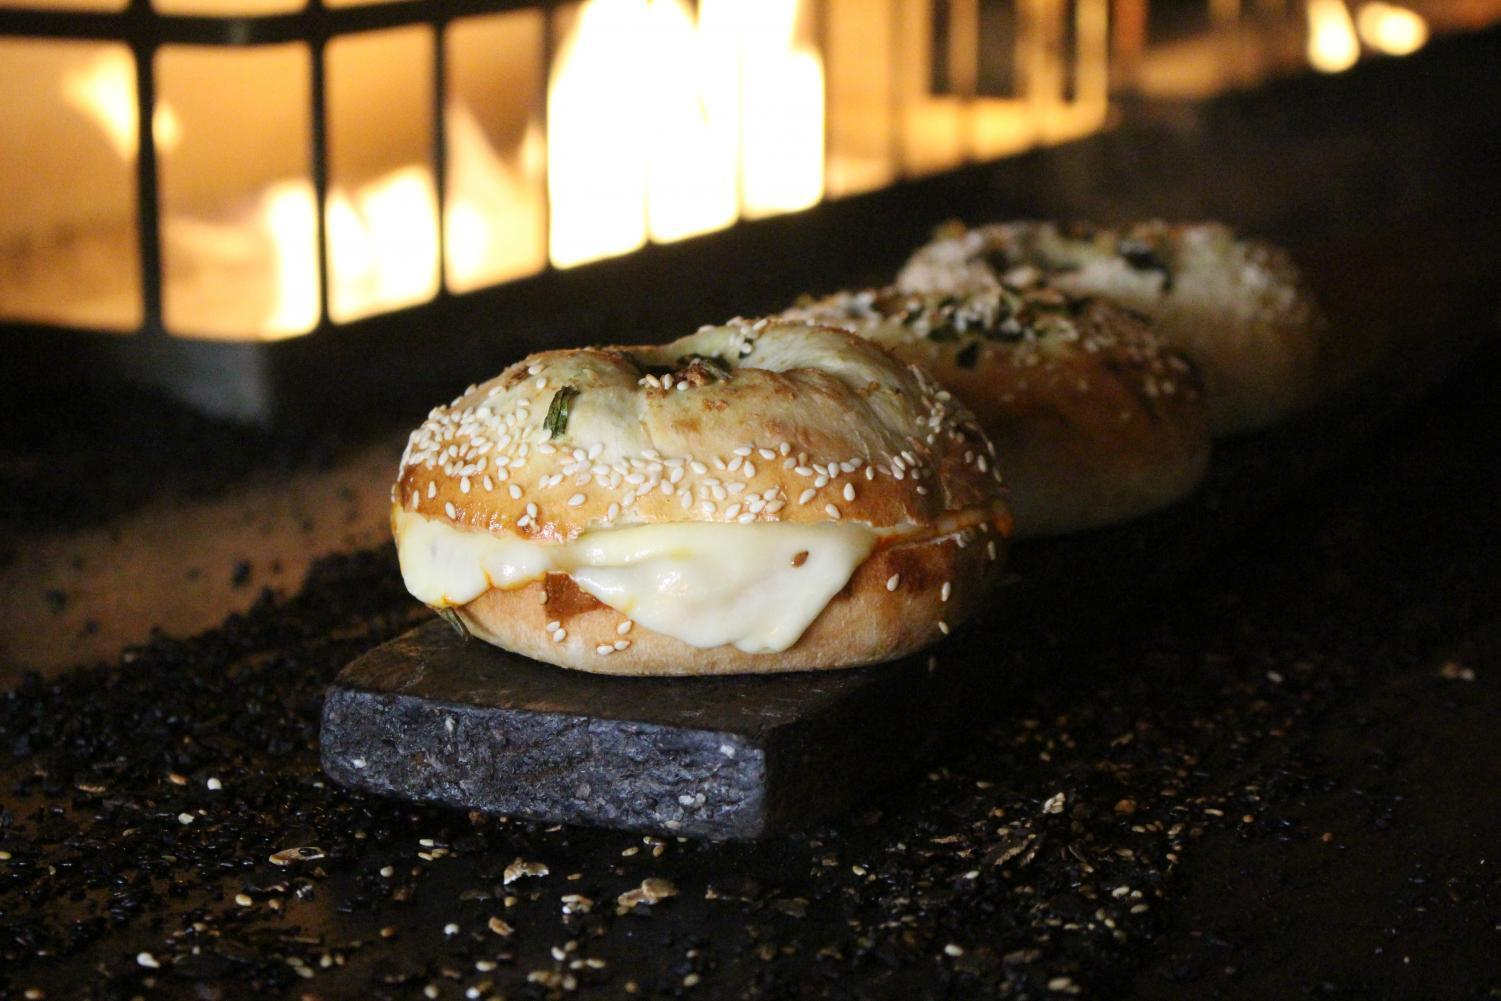 The new Don Angie x Black Seed collaboration bagel, a custom bialy topped and stuffed with green garlic, sesame, and different cheeses. This is part of Black Seed's ongoing monthly chef collaboration series.